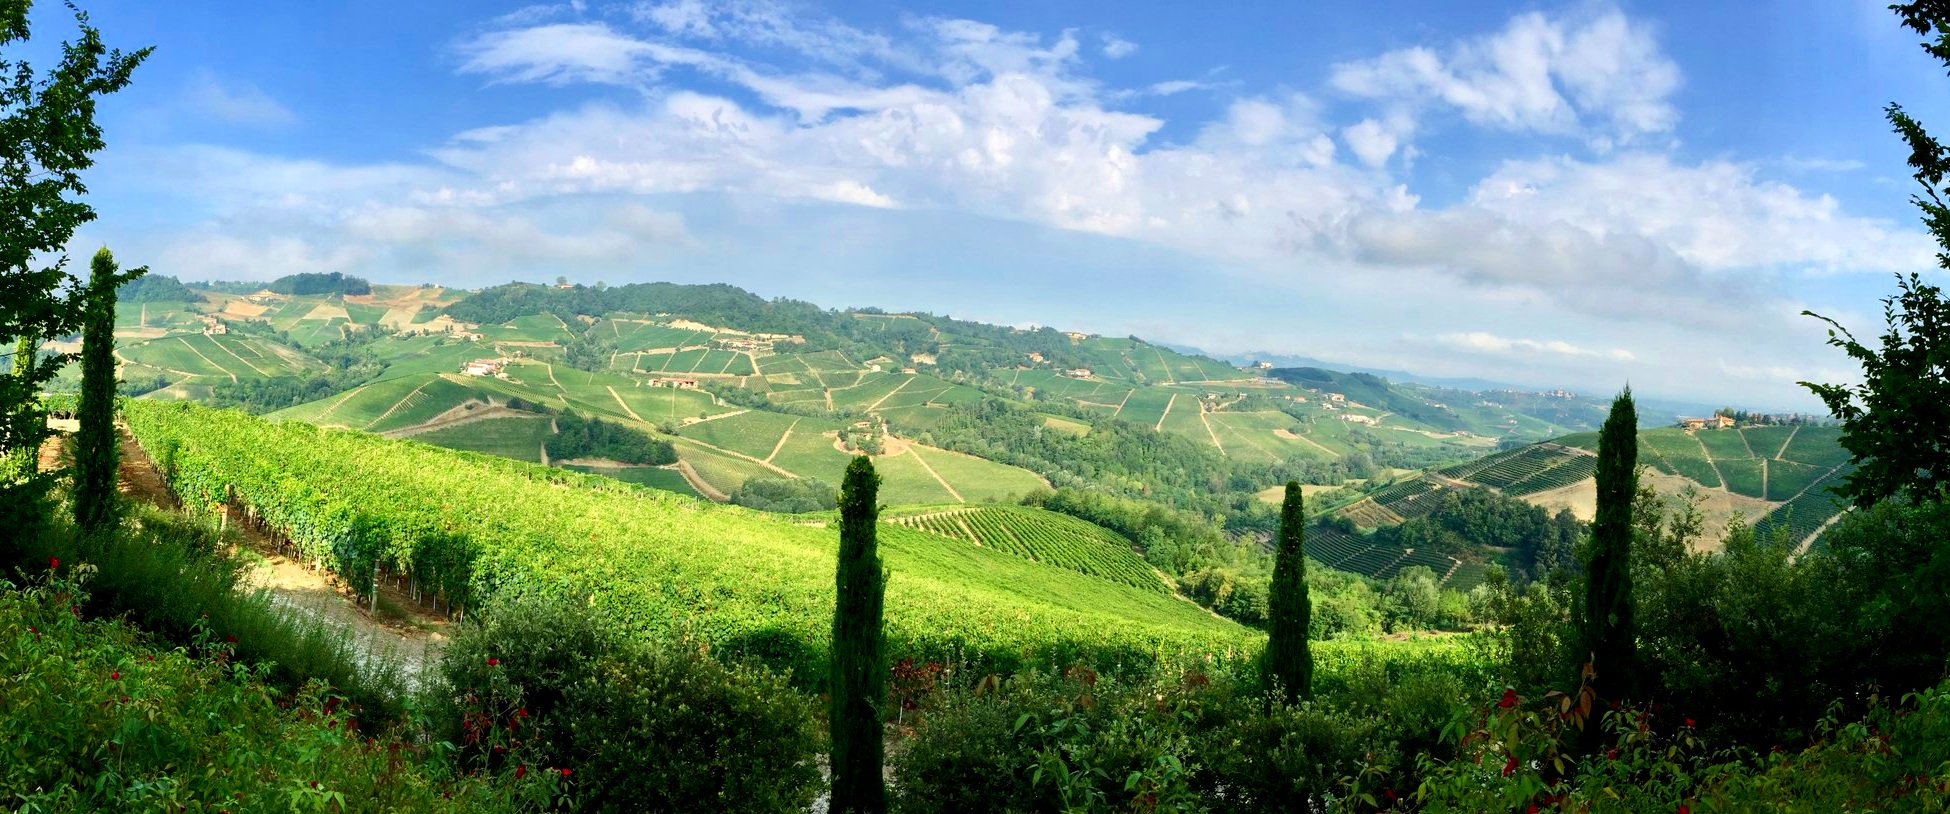 The vineyard landscapes of Langhe & Roero, five distinct winegrowing areas and a castle - Unesco World Heritage Site of Piedmont